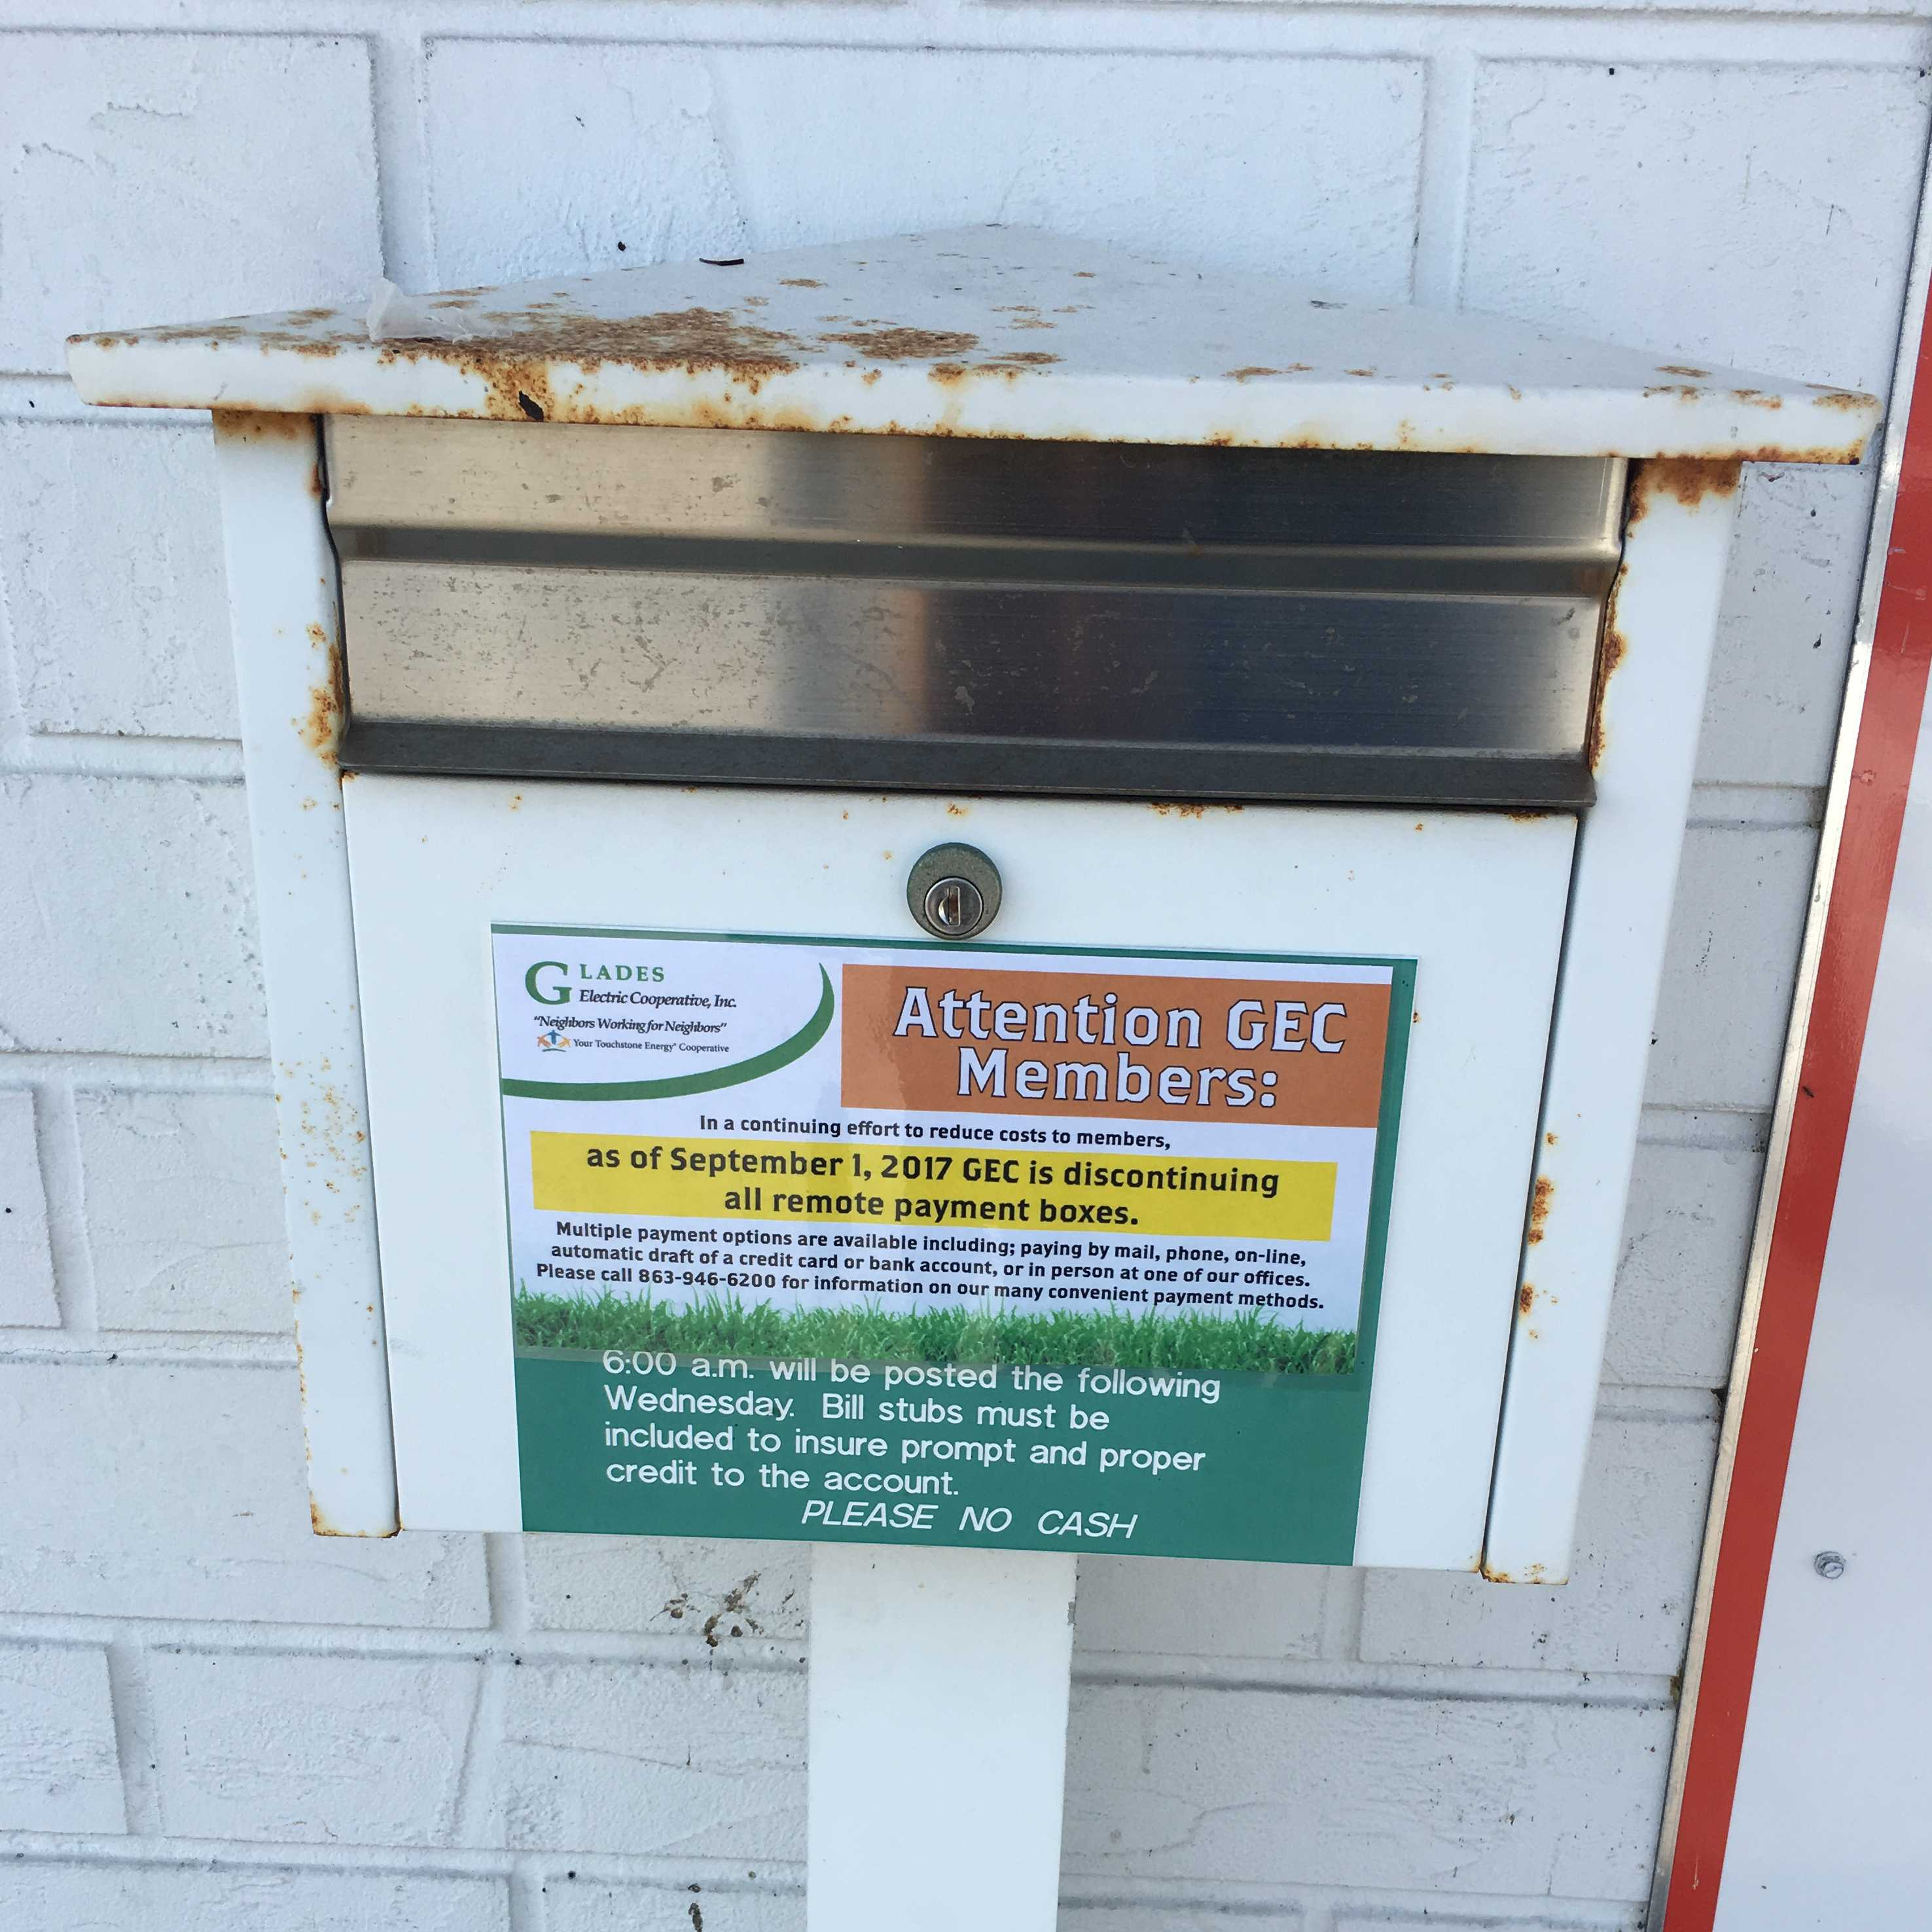 A Glades Electric Payment Drop Box